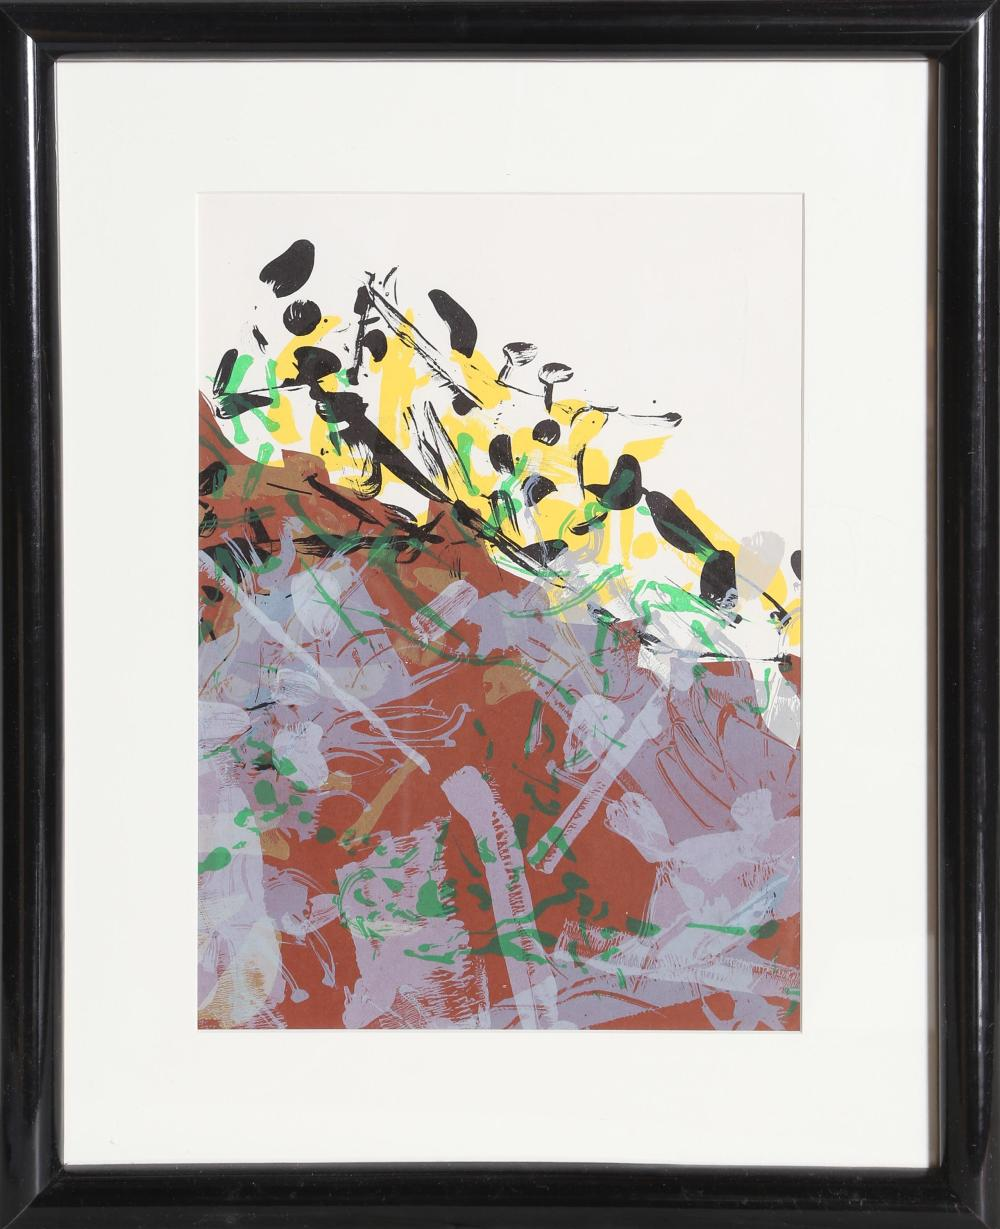 Jean-Paul Riopelle, Purple Abstract from Derriere le Miroir, Lithograph